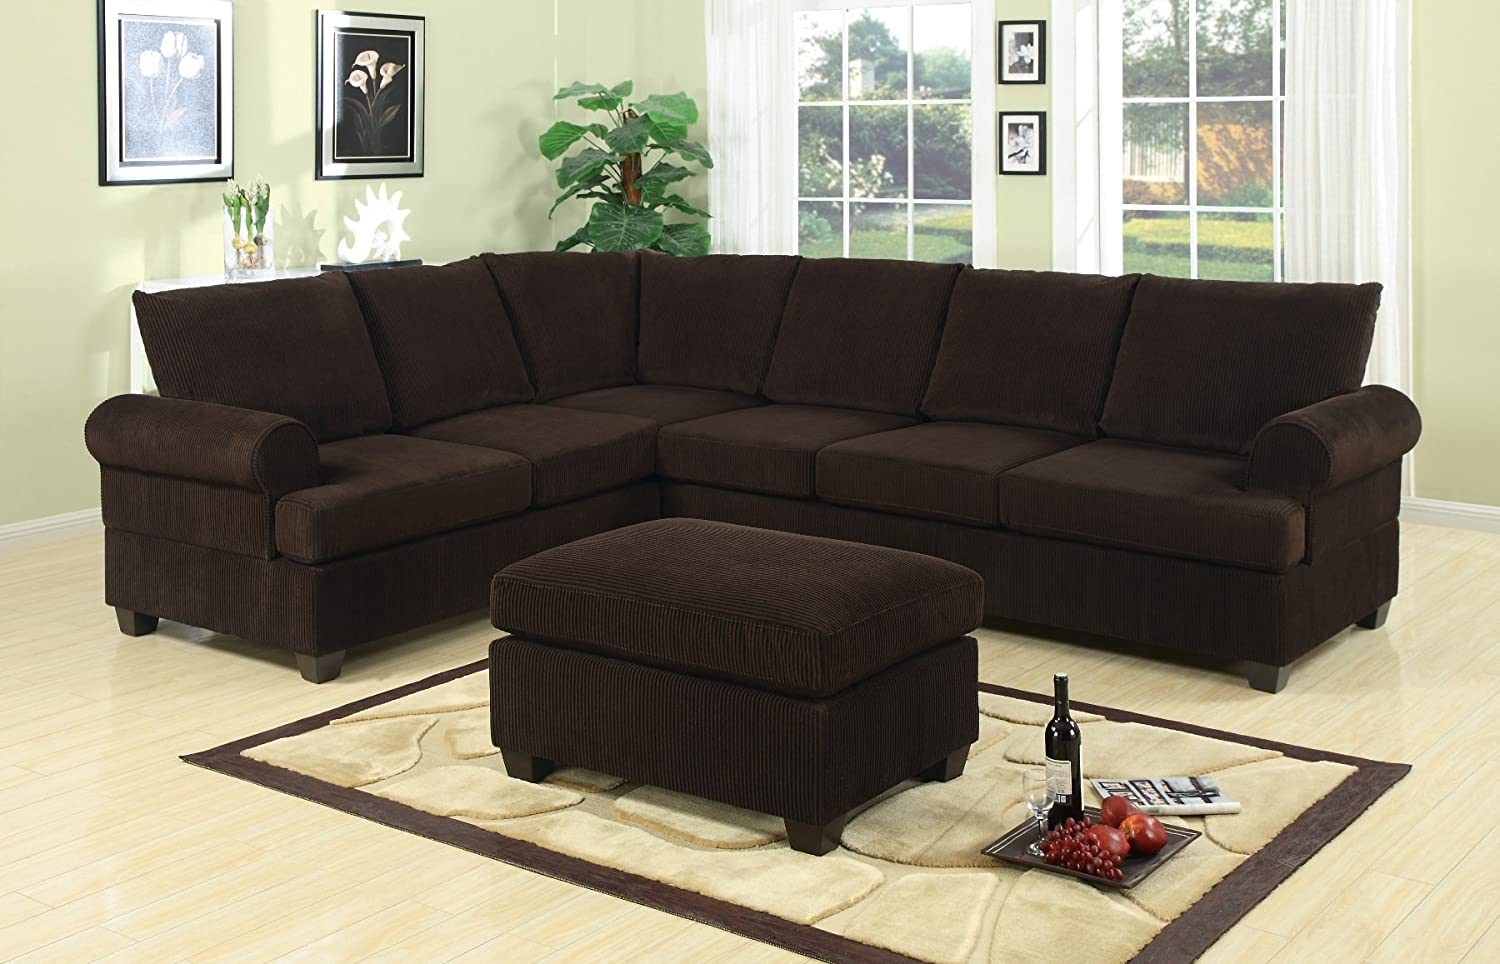 Top rated couches living room sets under 2014 for Best rated living room furniture